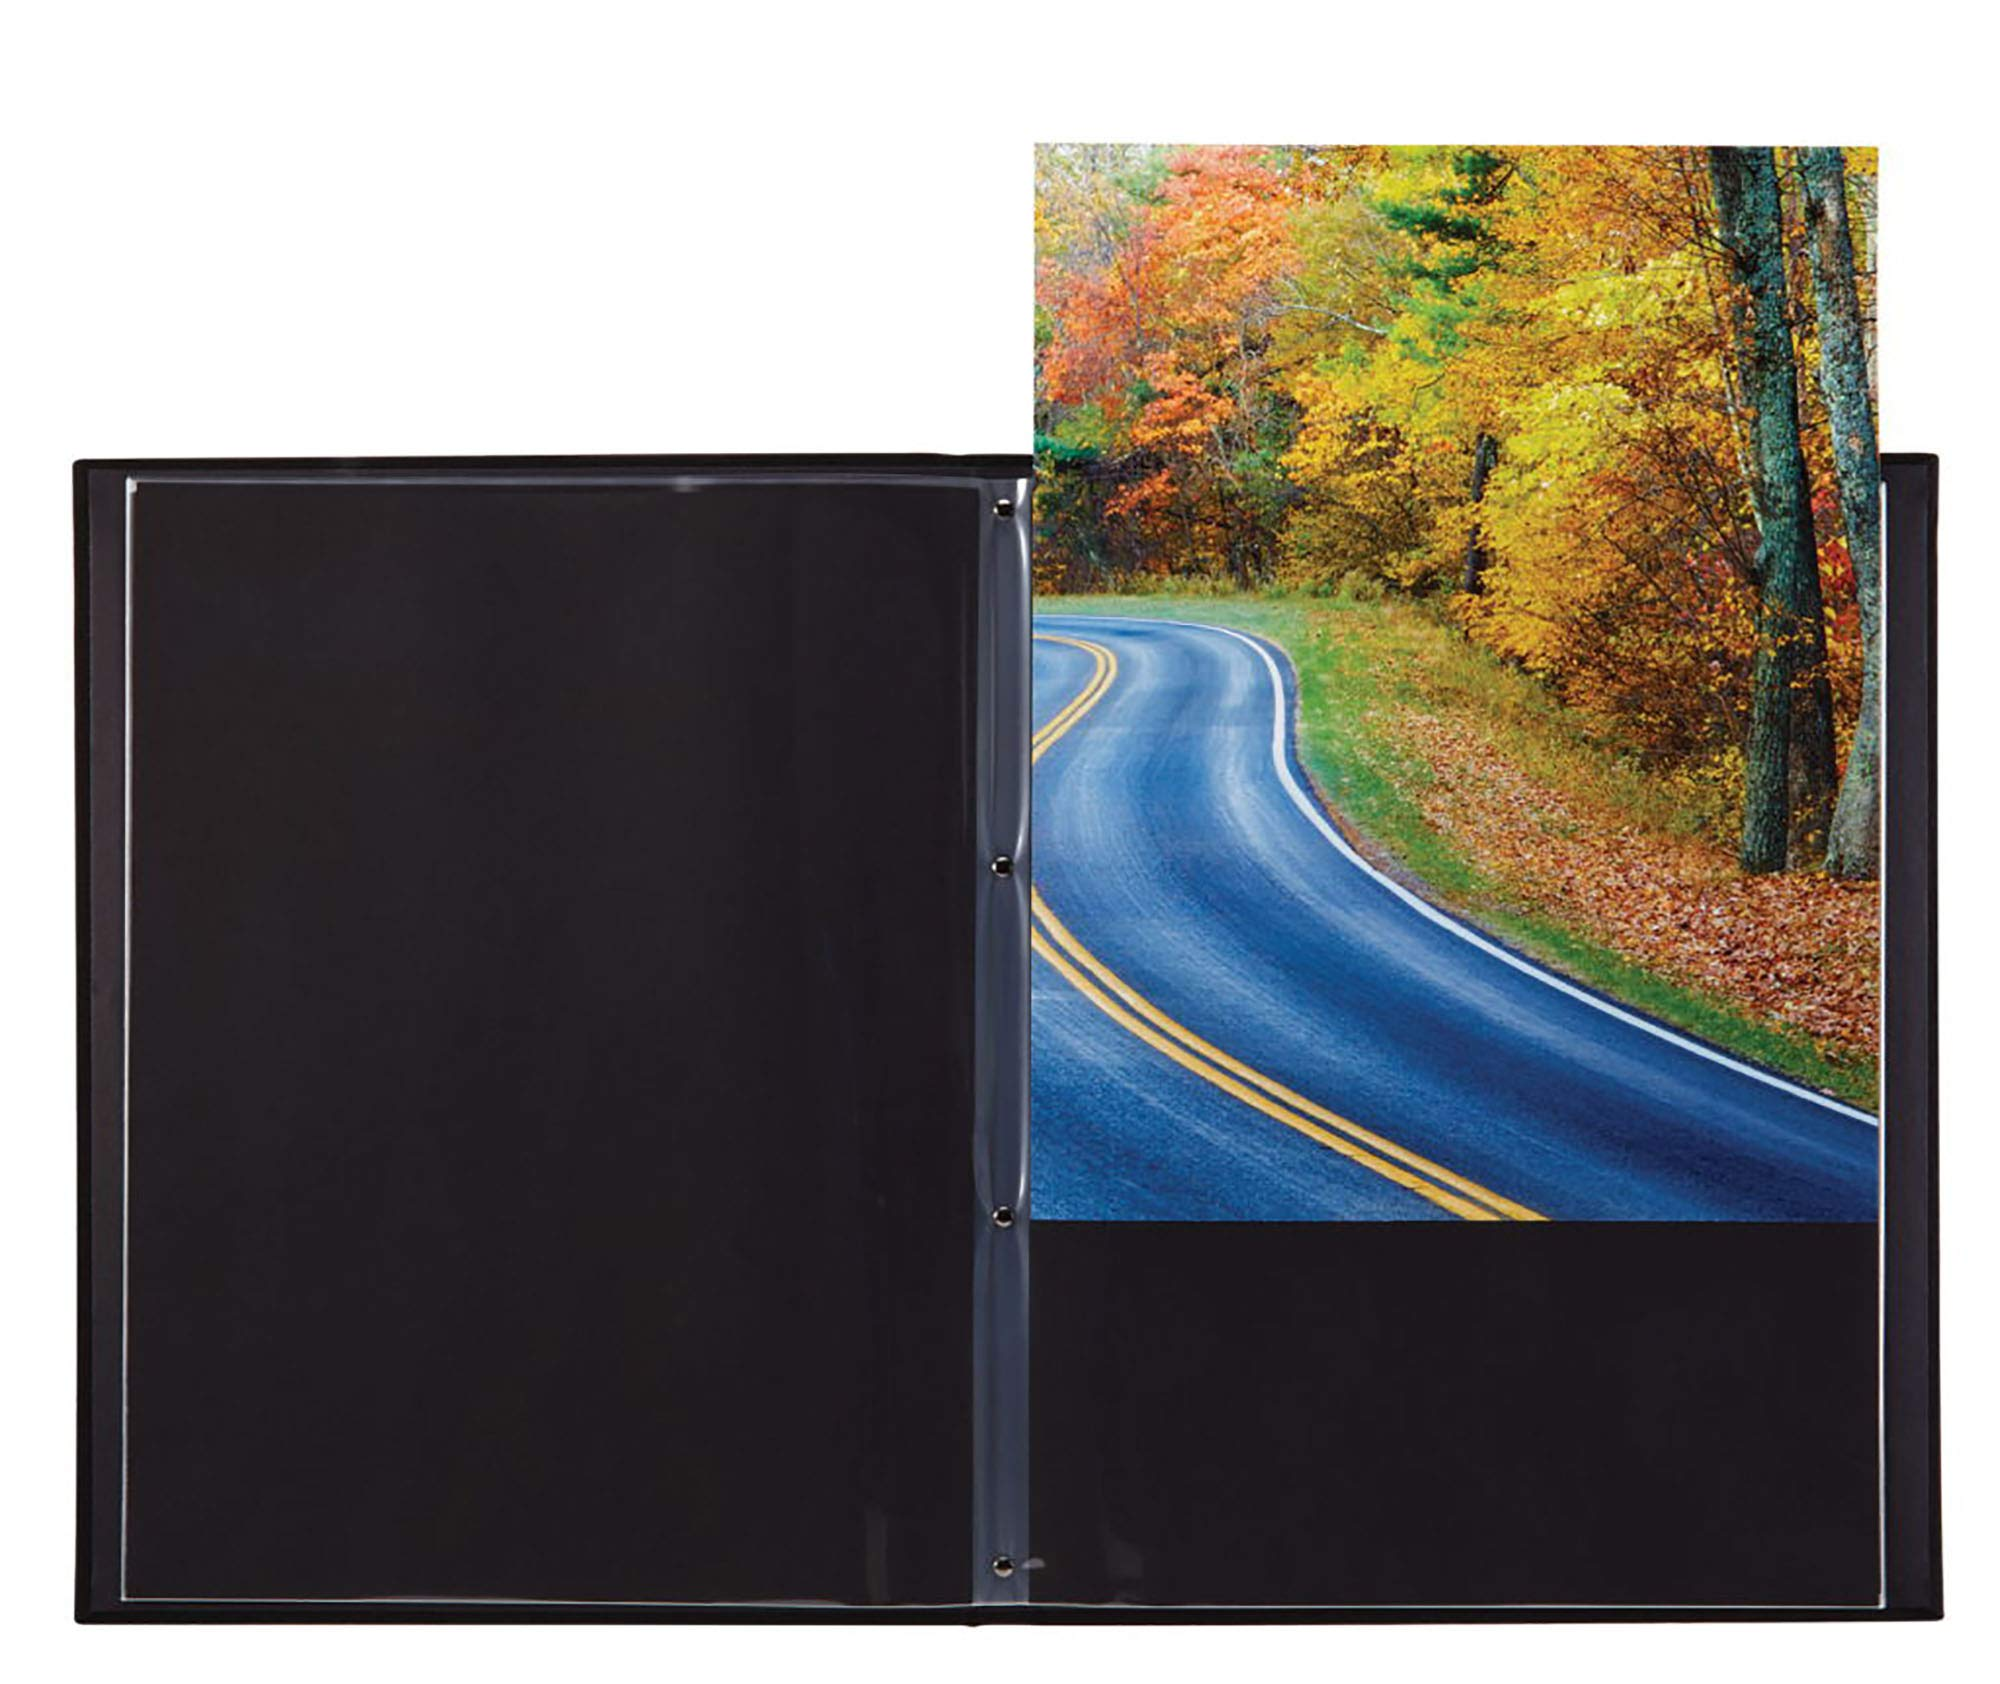 ProFolio by Itoya, Professional Art and Photography Presentation Book Portfolio With 24 Pockets - 8 x 11 Inches